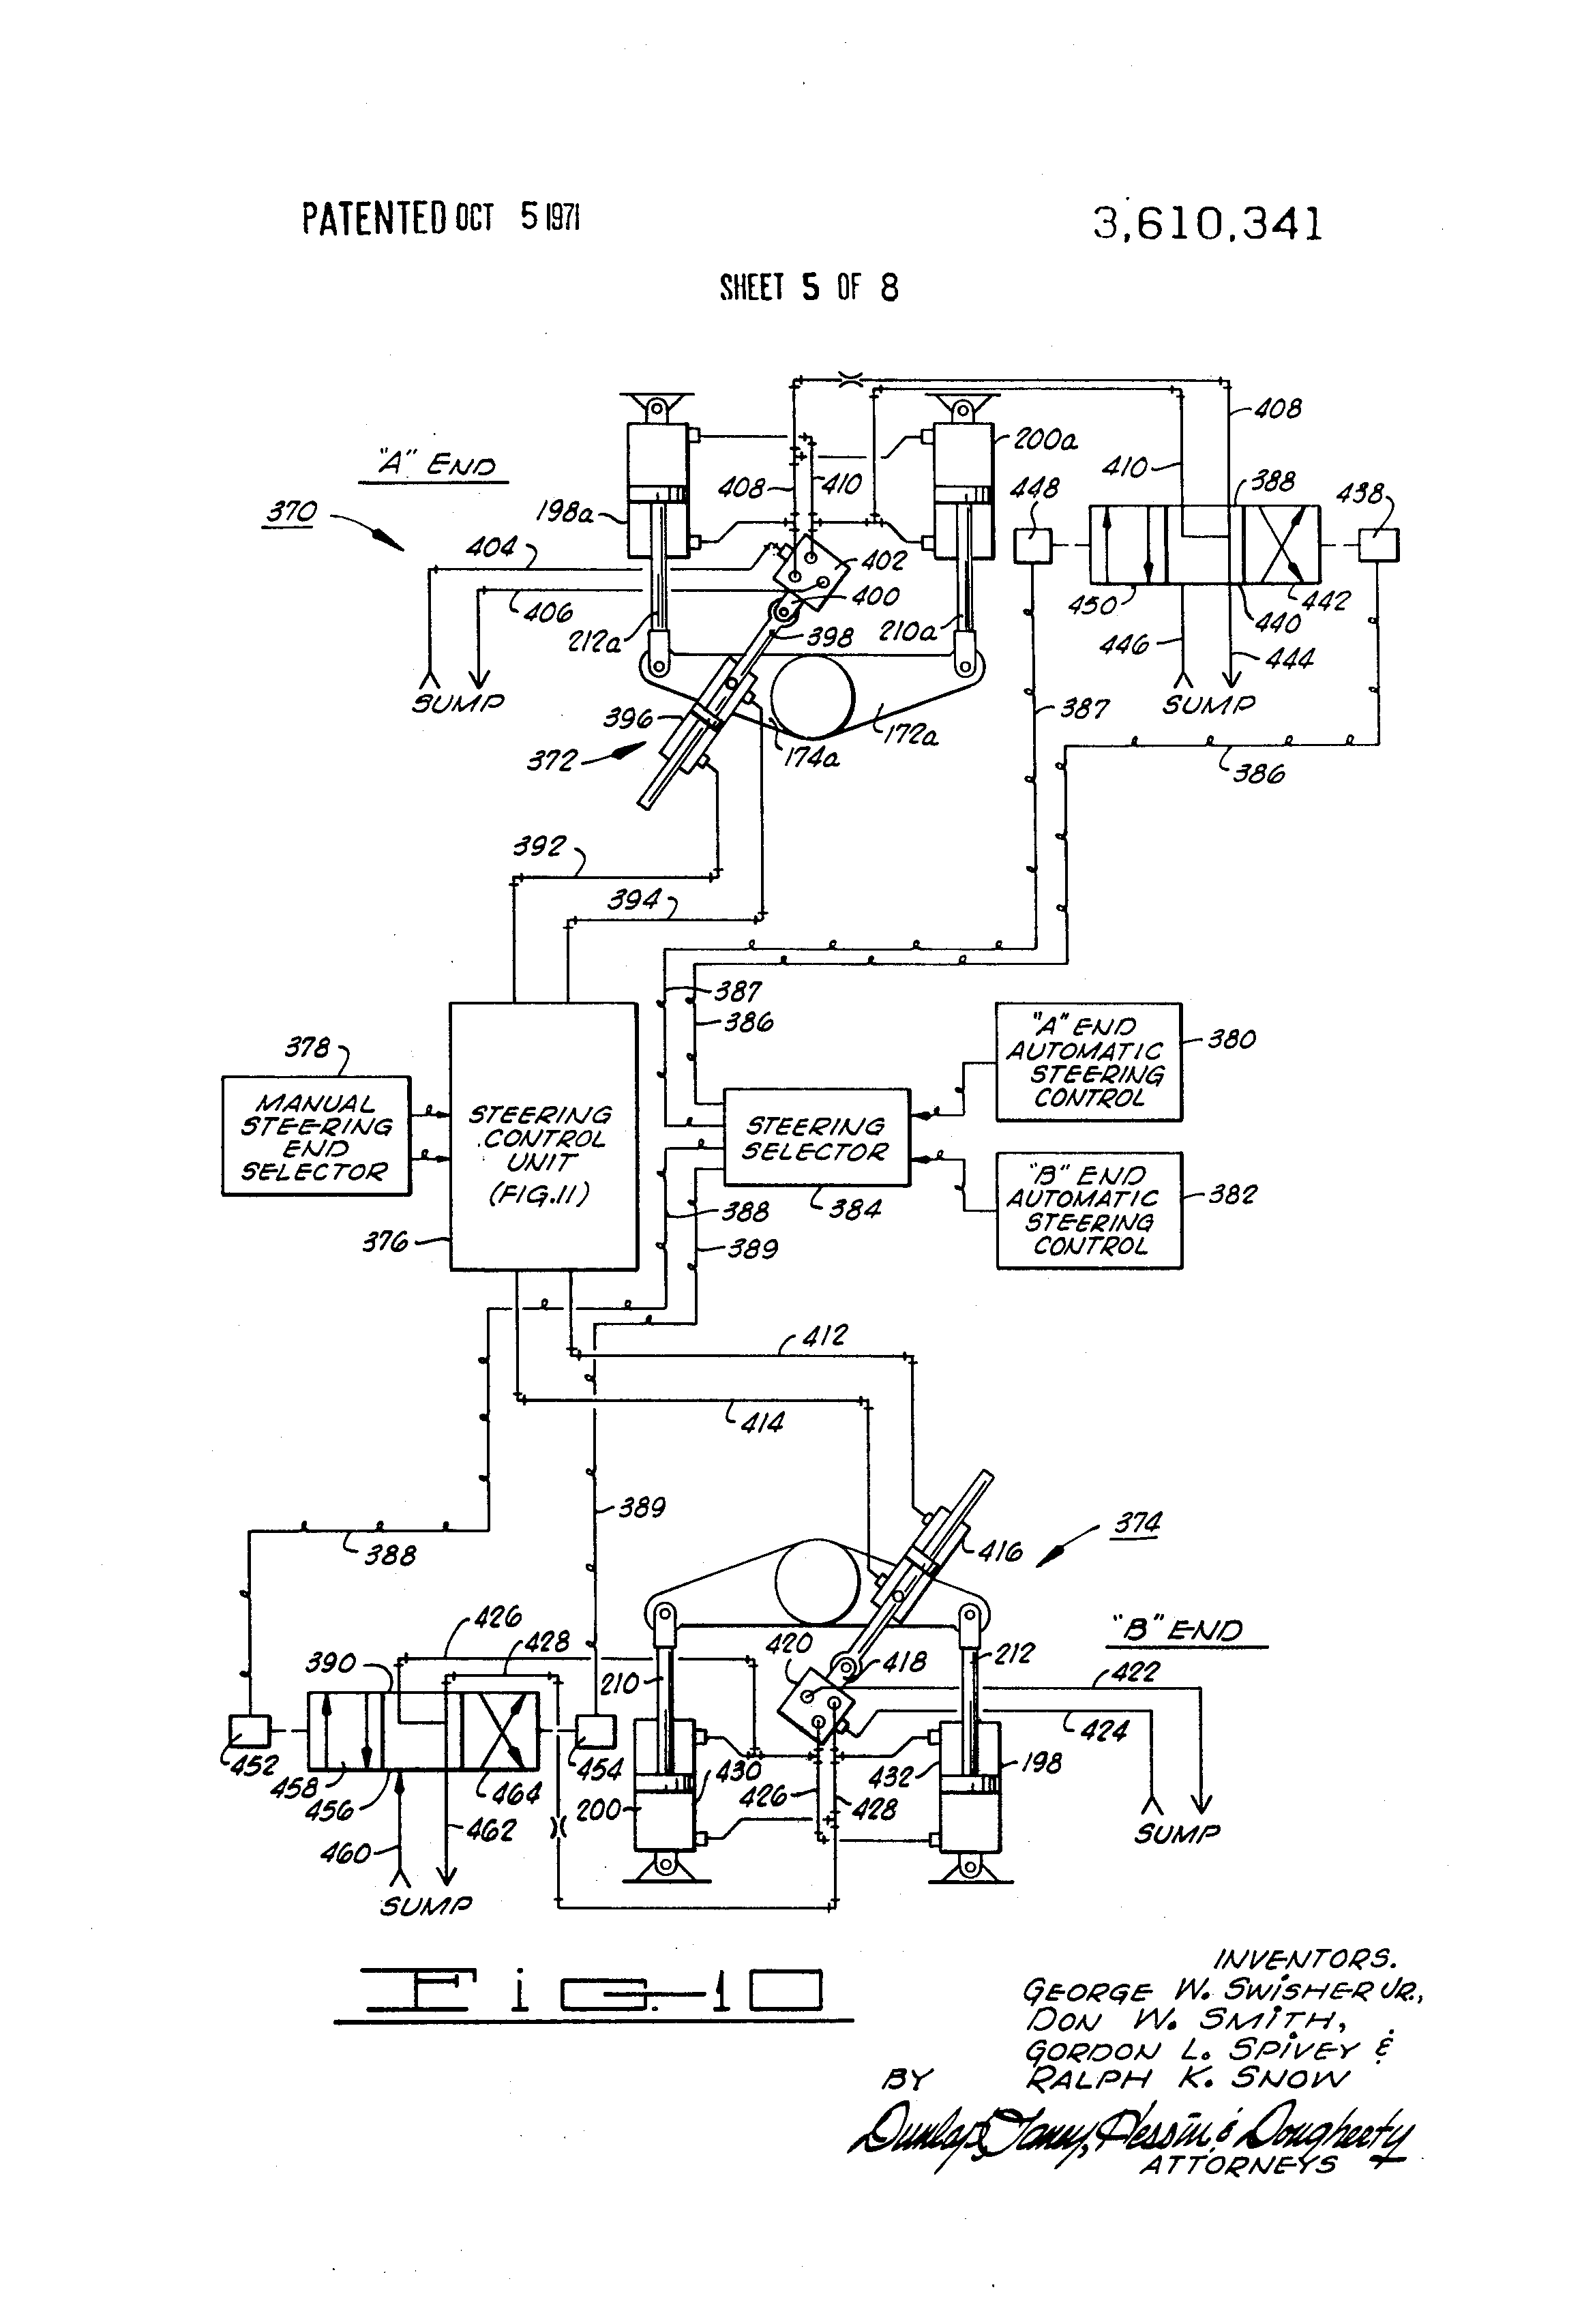 wiring diagrams john deere 210lj wiring diagrams john wiring diagrams john deere 210lj john deere 210 le schematic john deere 210le specifications